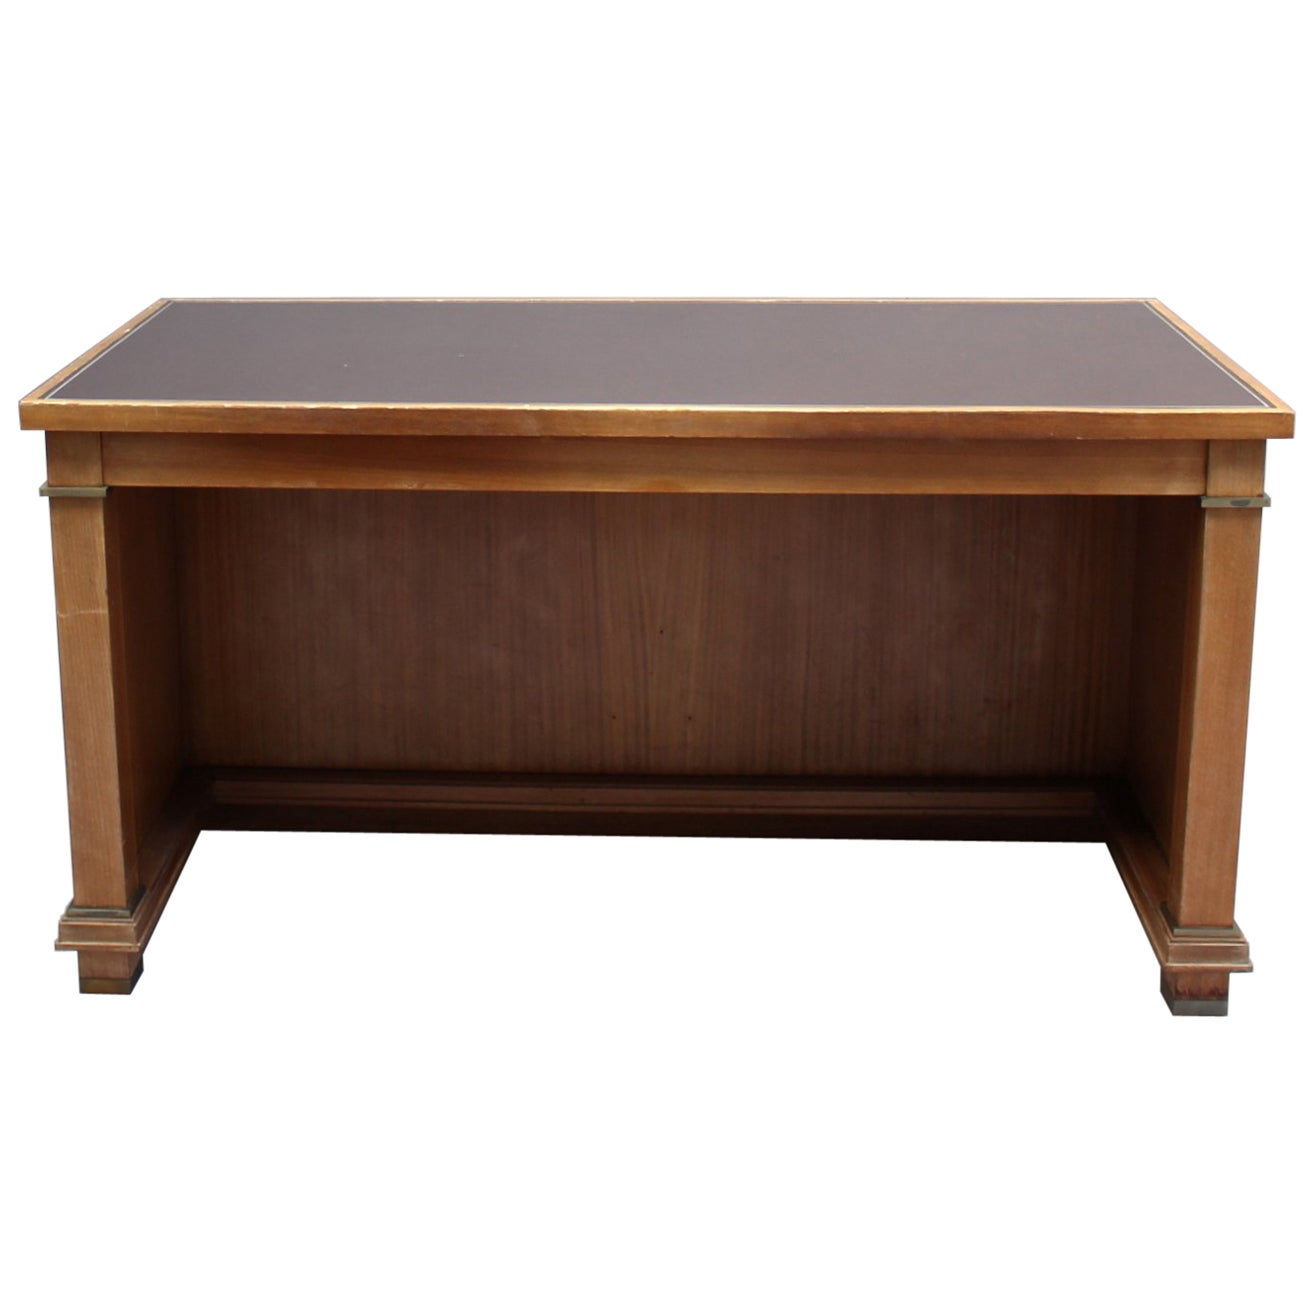 Fine French 1950's Rectangular Mahogany Desk by Jacques Adnet (2 available)